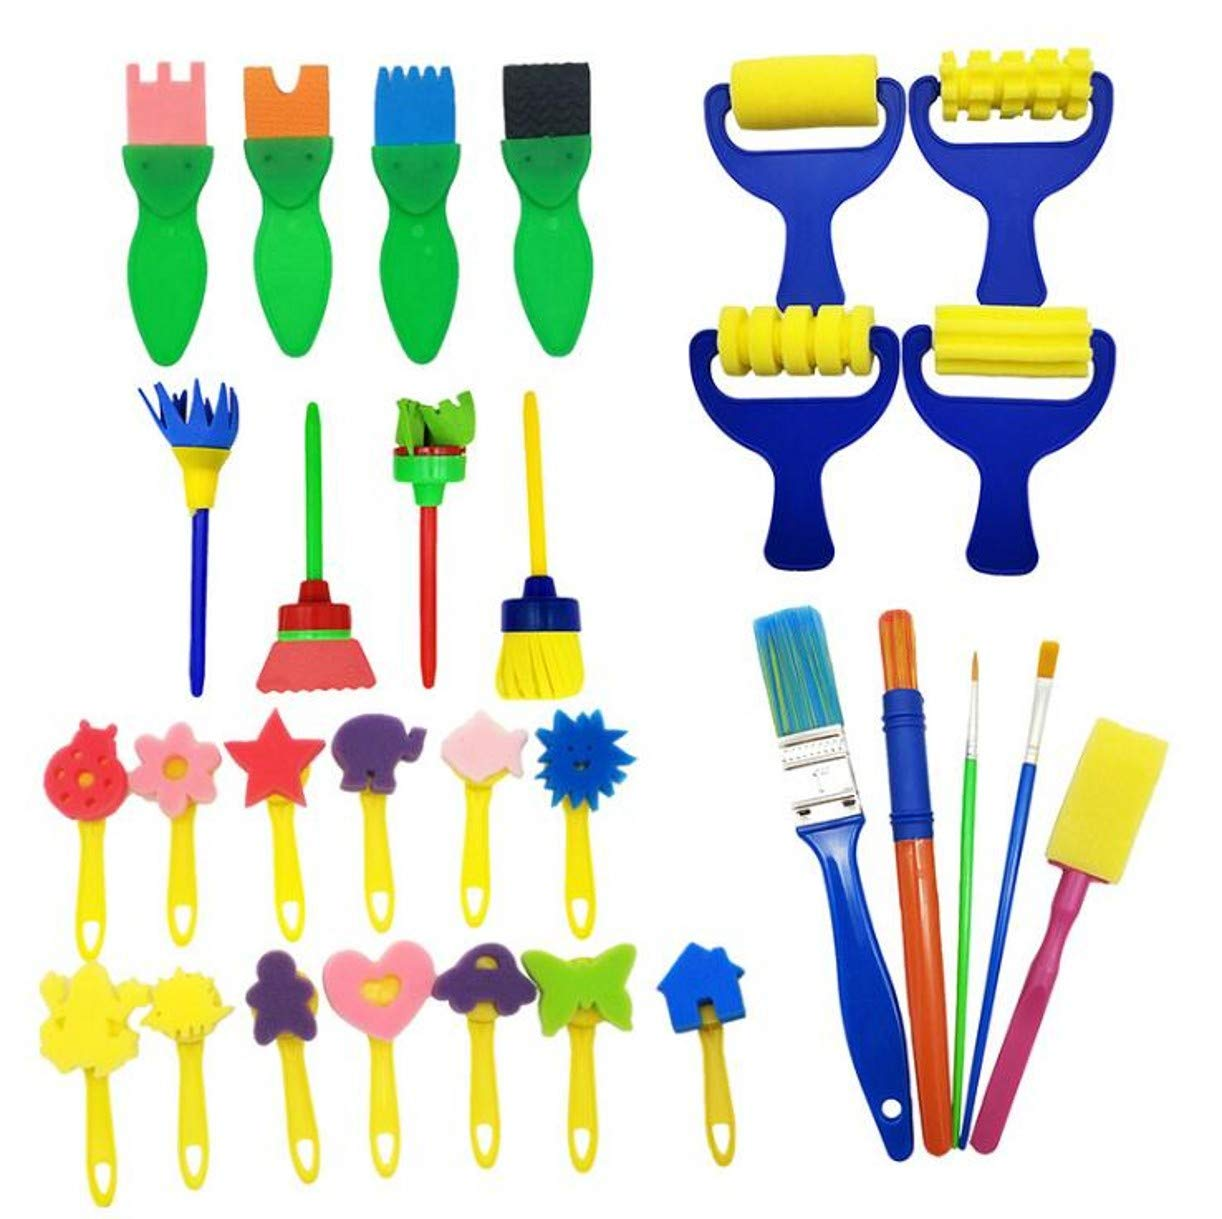 WellieSTR 30pcs Set Creative Sponge Painting Brushes Kids Painting Kits Early Learning Foam Brushes for DIY Art Crafts